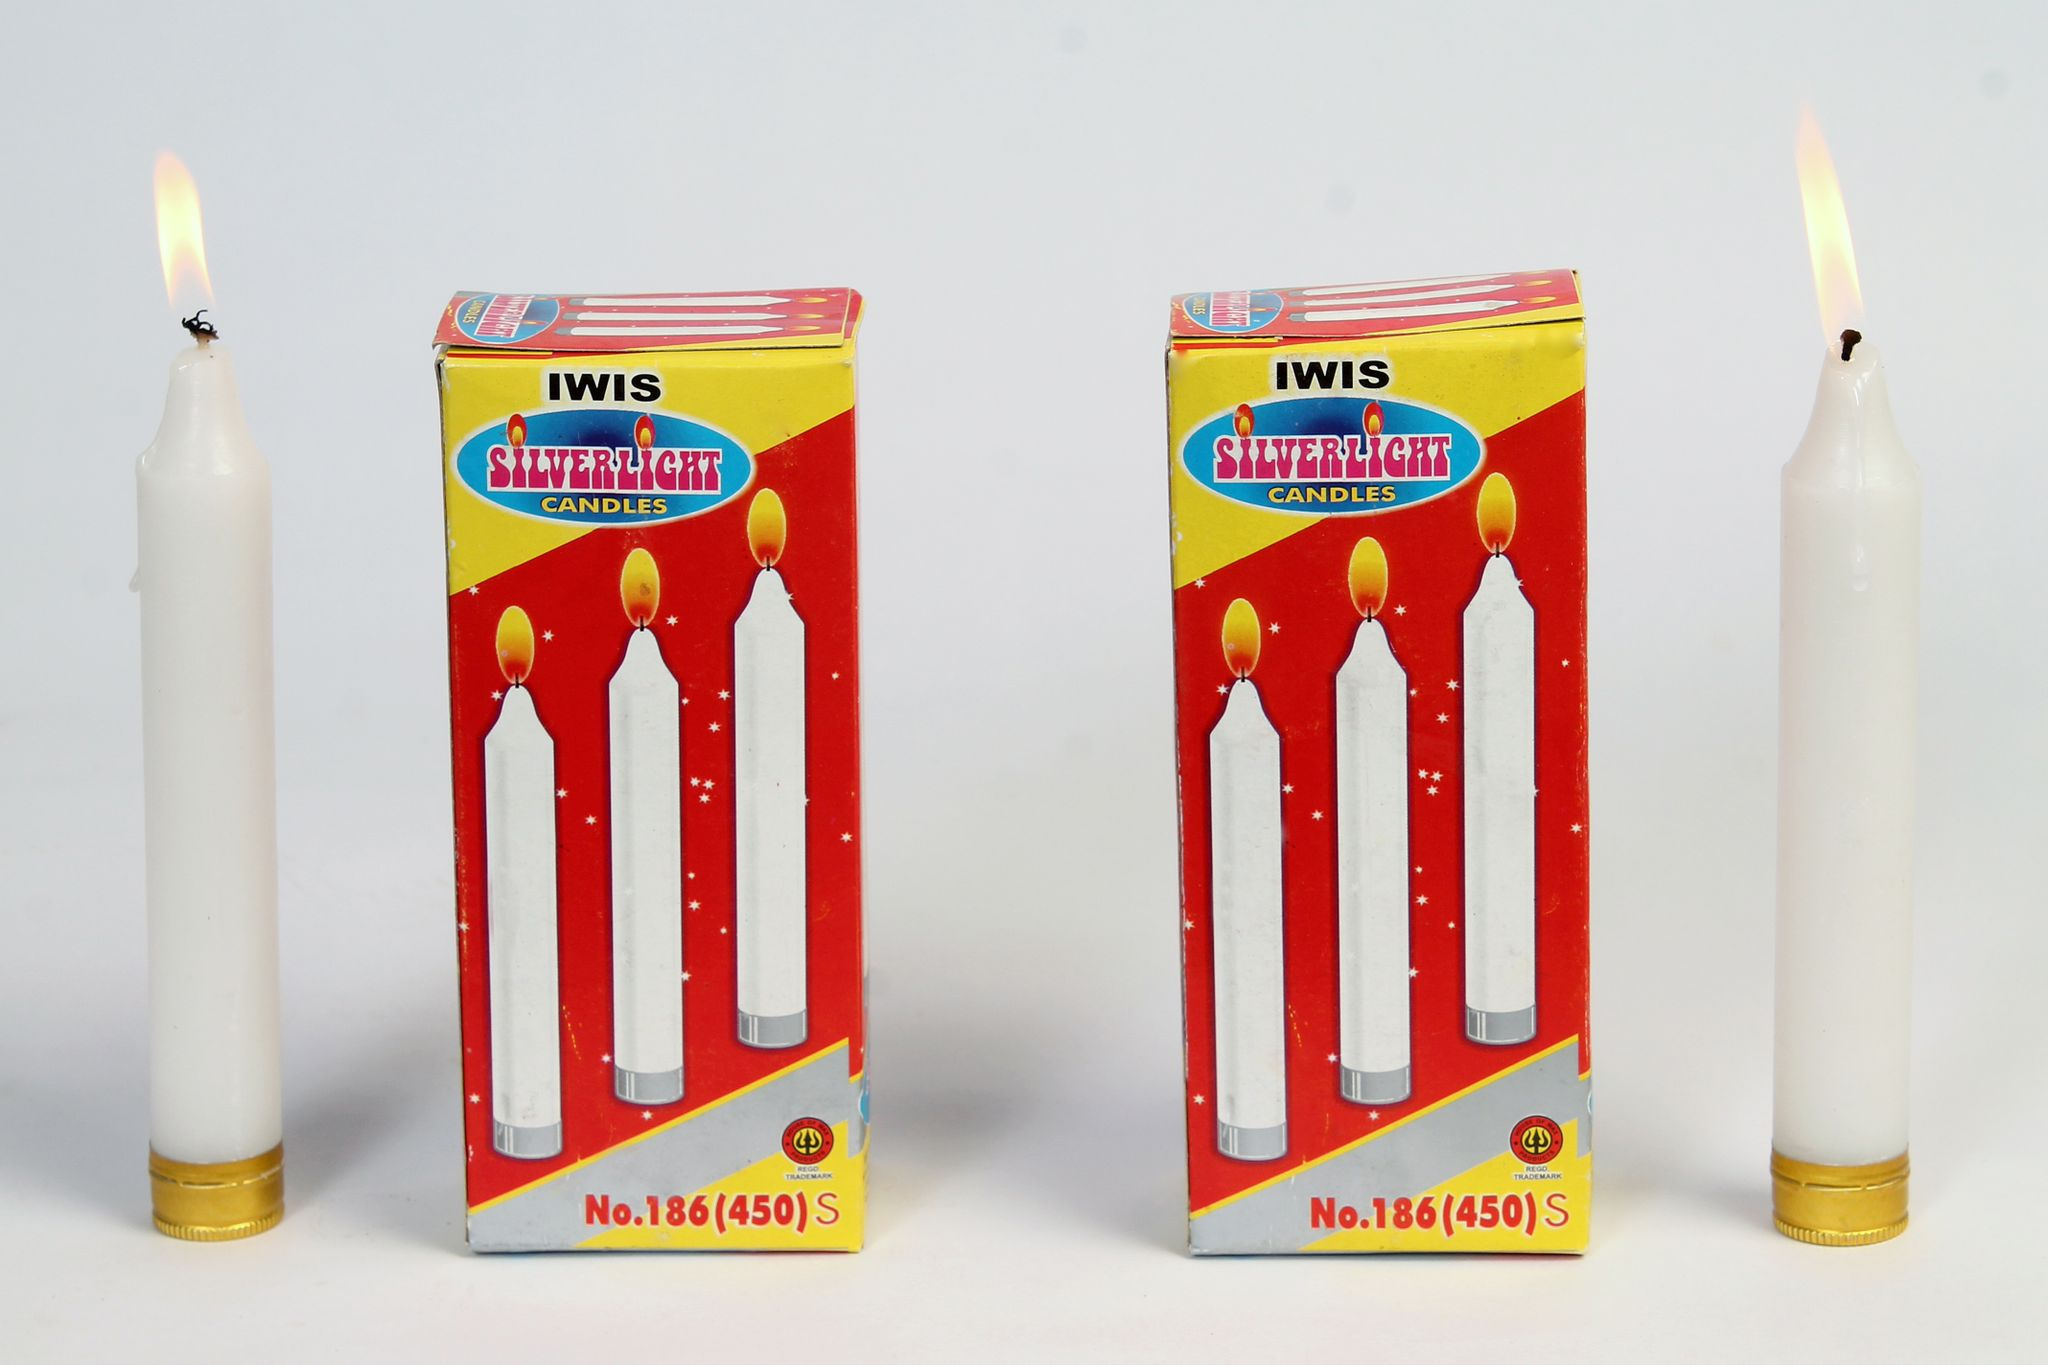 PILLAR CANDLES BY INDIAN WAX INDUSTRIES